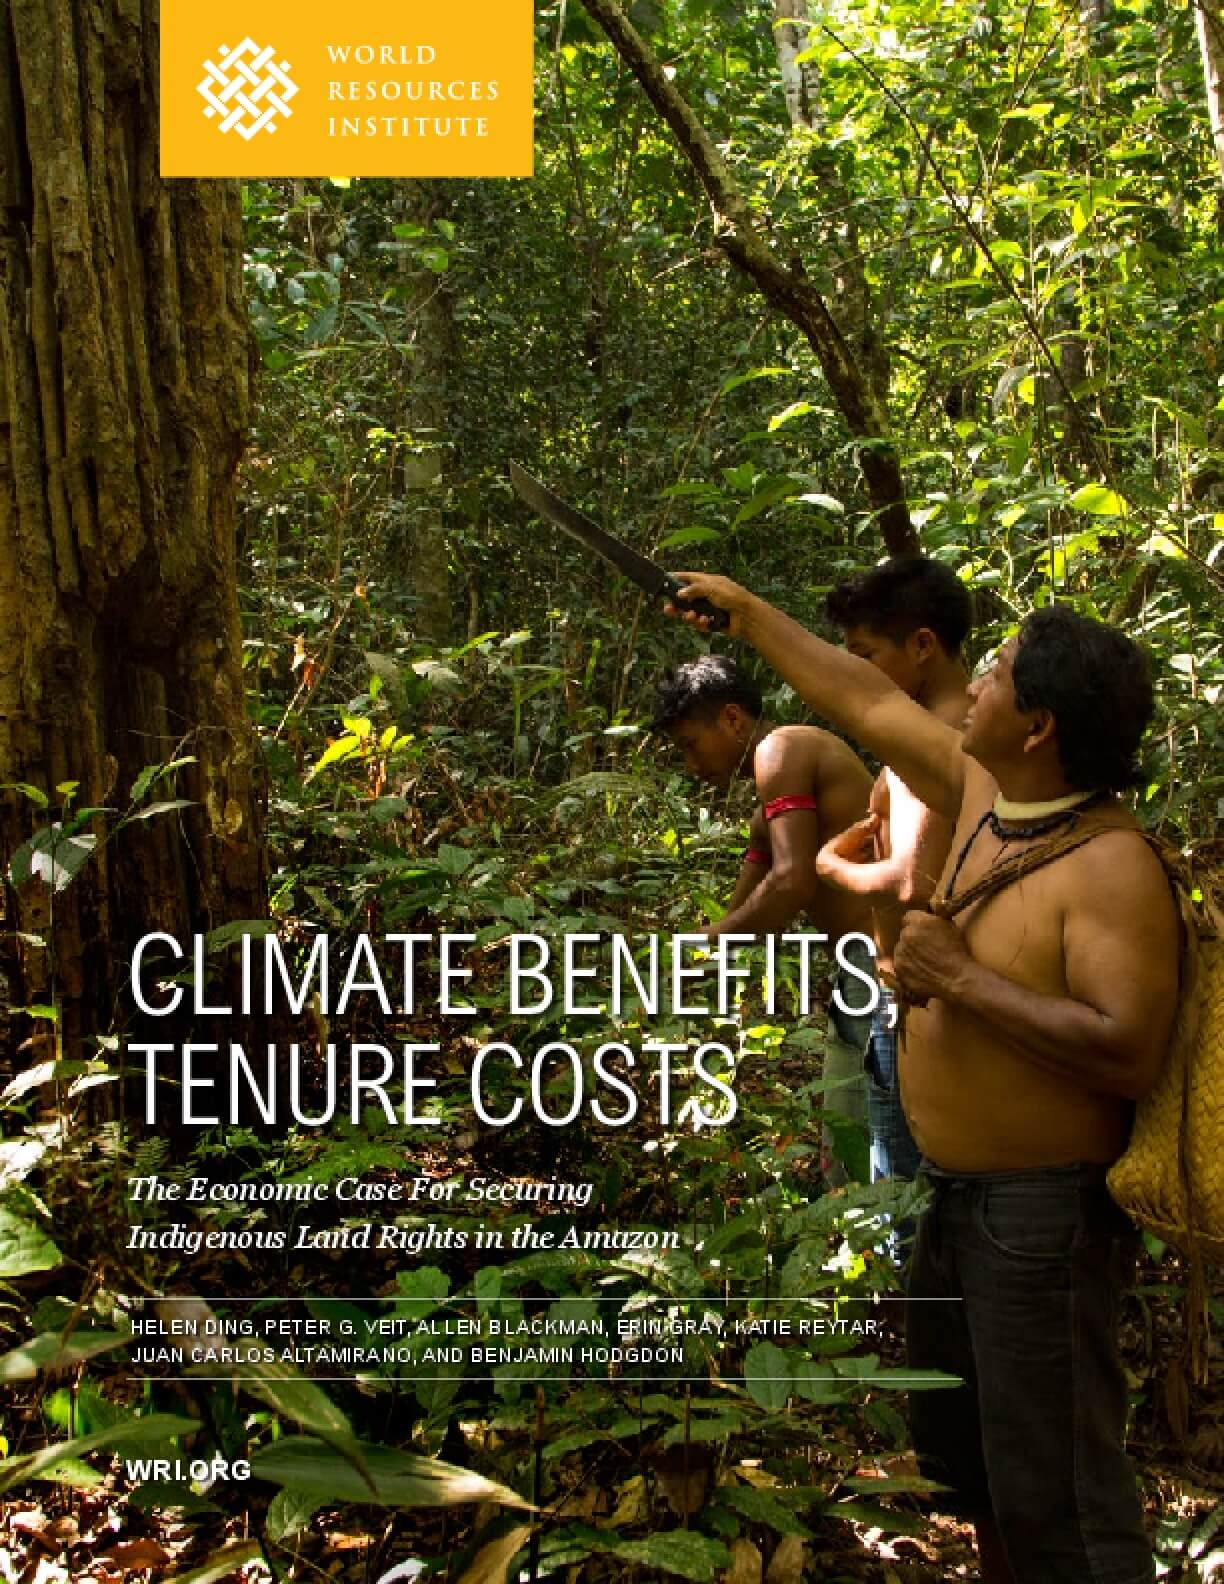 Climate Benefits Tenure Costs: The Economic Case for Securing Indigenous Land Rights in the Amazon